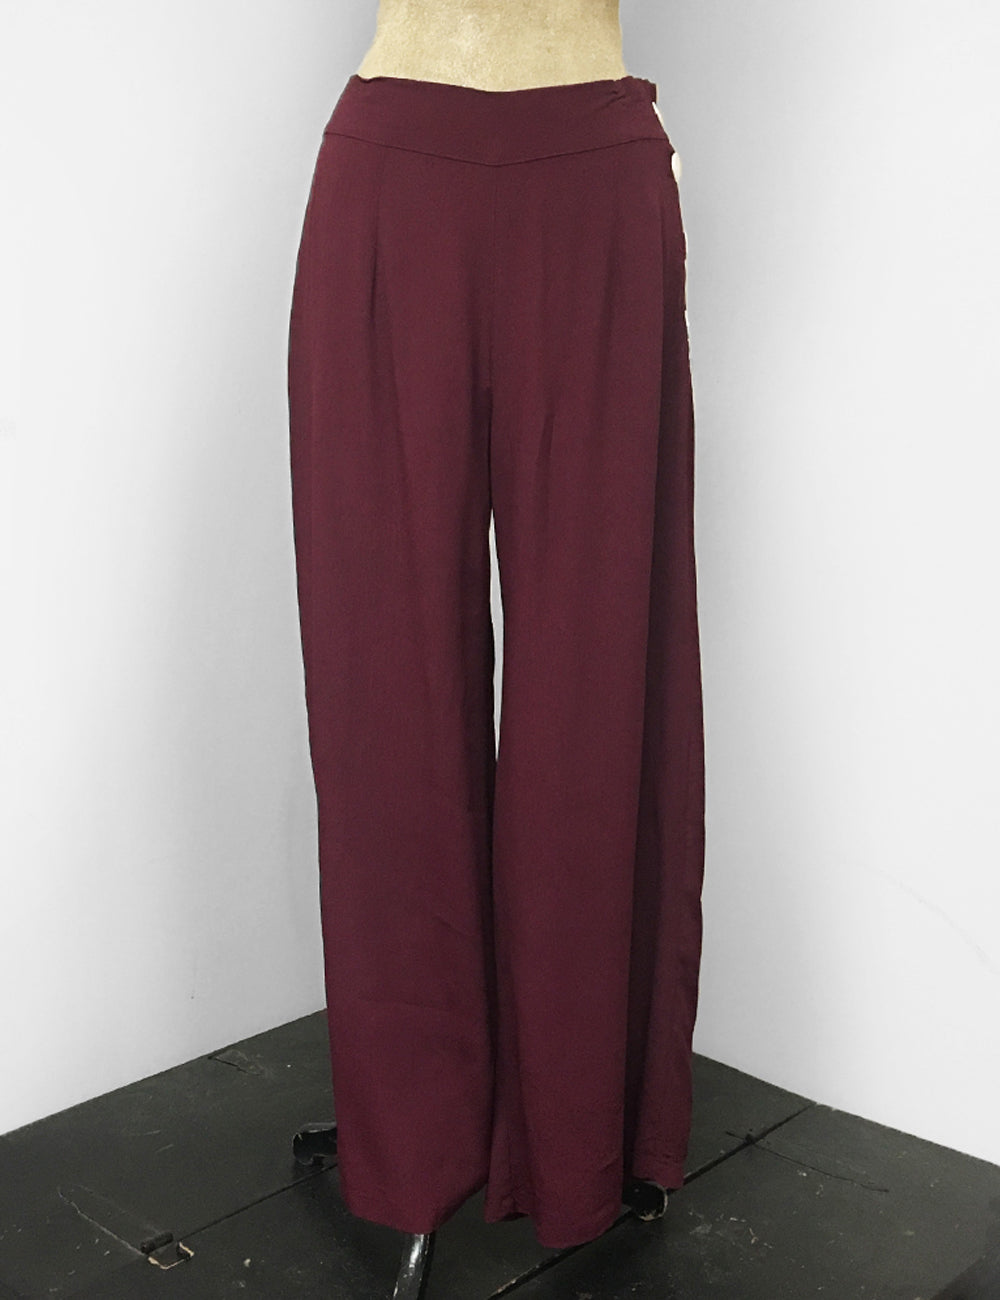 Solid Burgundy 1940s Style High Waisted Palazzo Pants